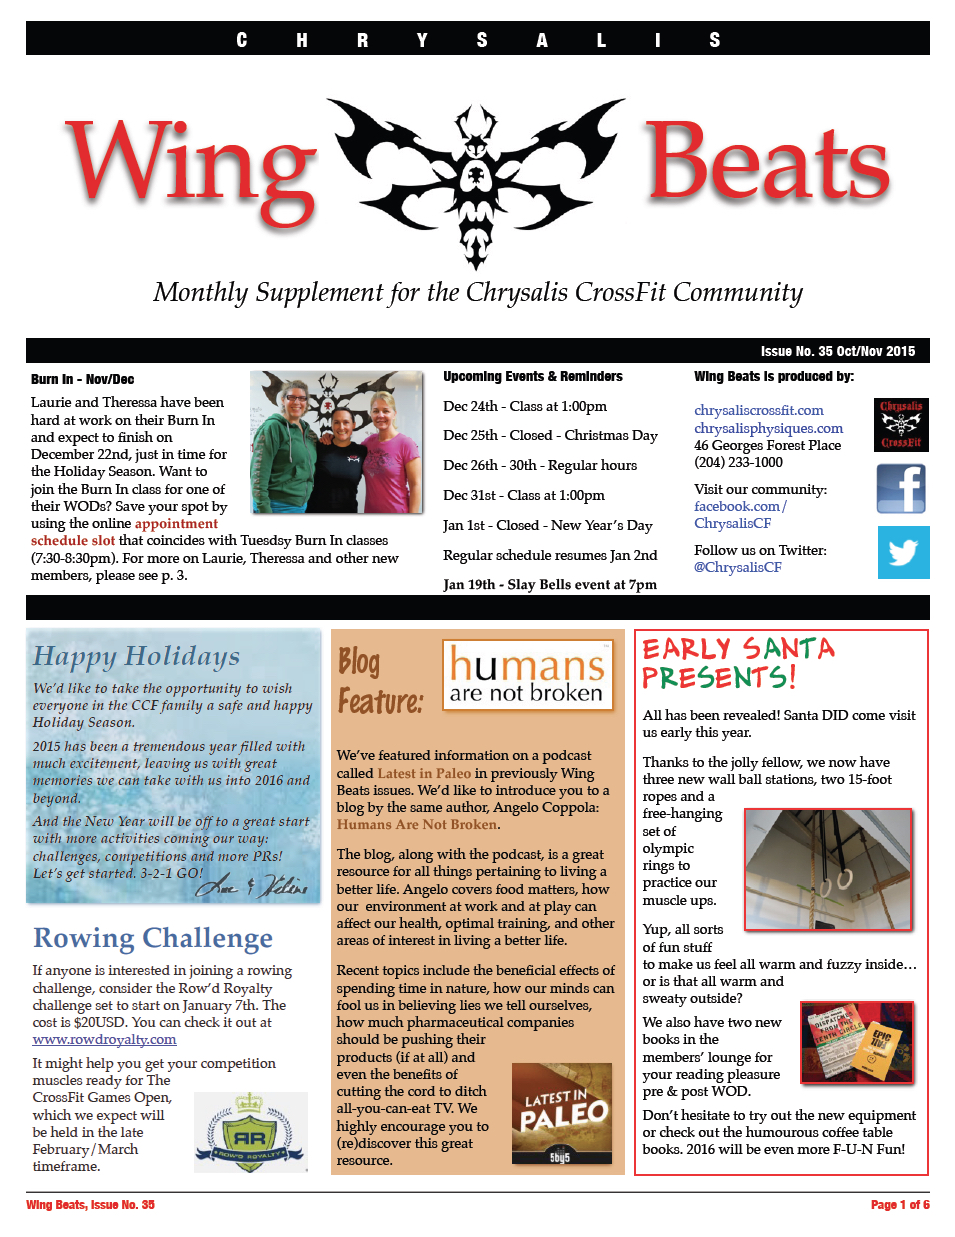 WingBeats Issue #35 - OctNov 2015